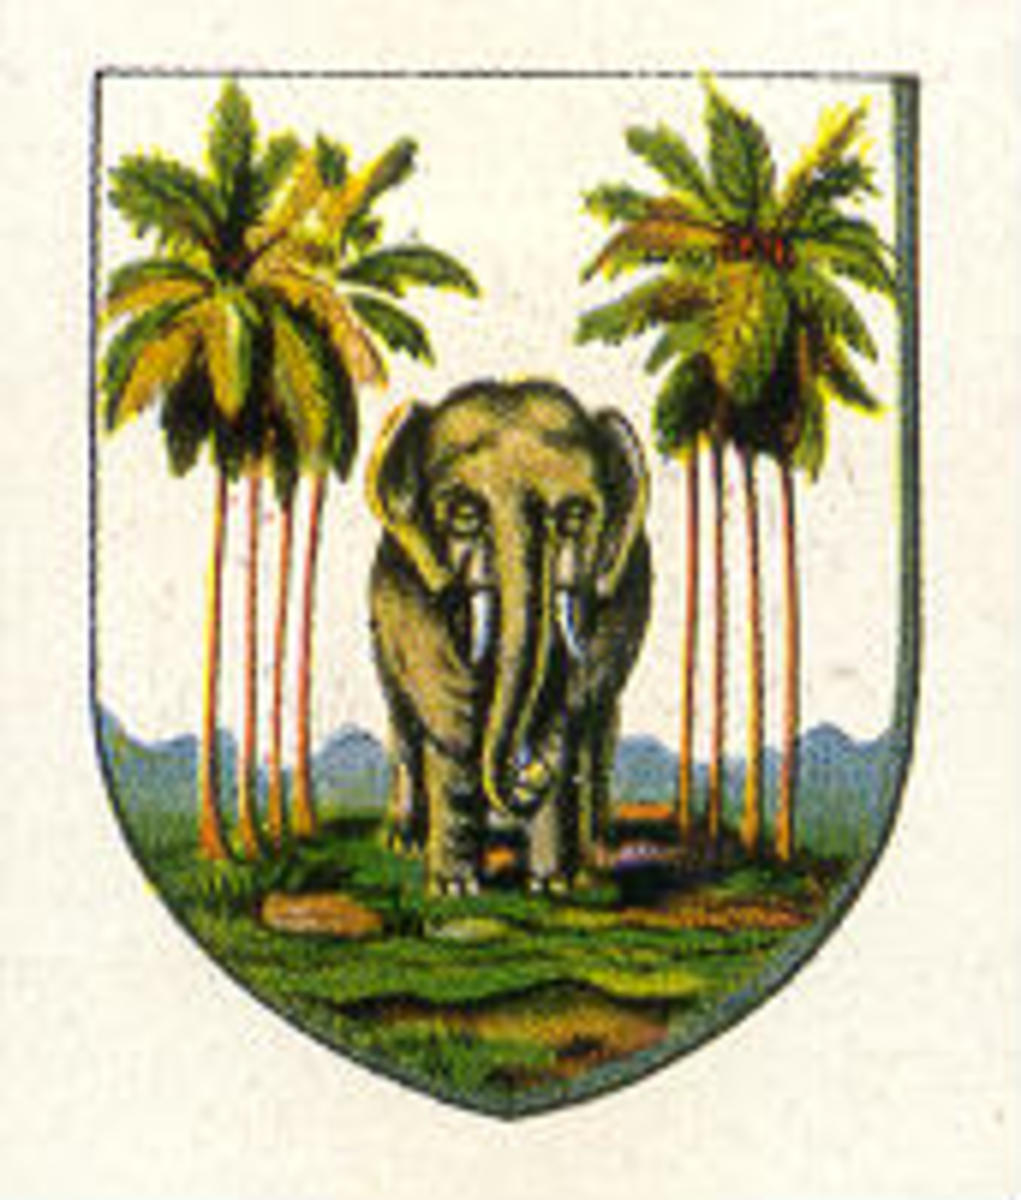 Public domain ~ copyright expired. See: http://en.wikipedia.org/wiki/File:Coat_of_arms_Ceylon_british_colony.jpg